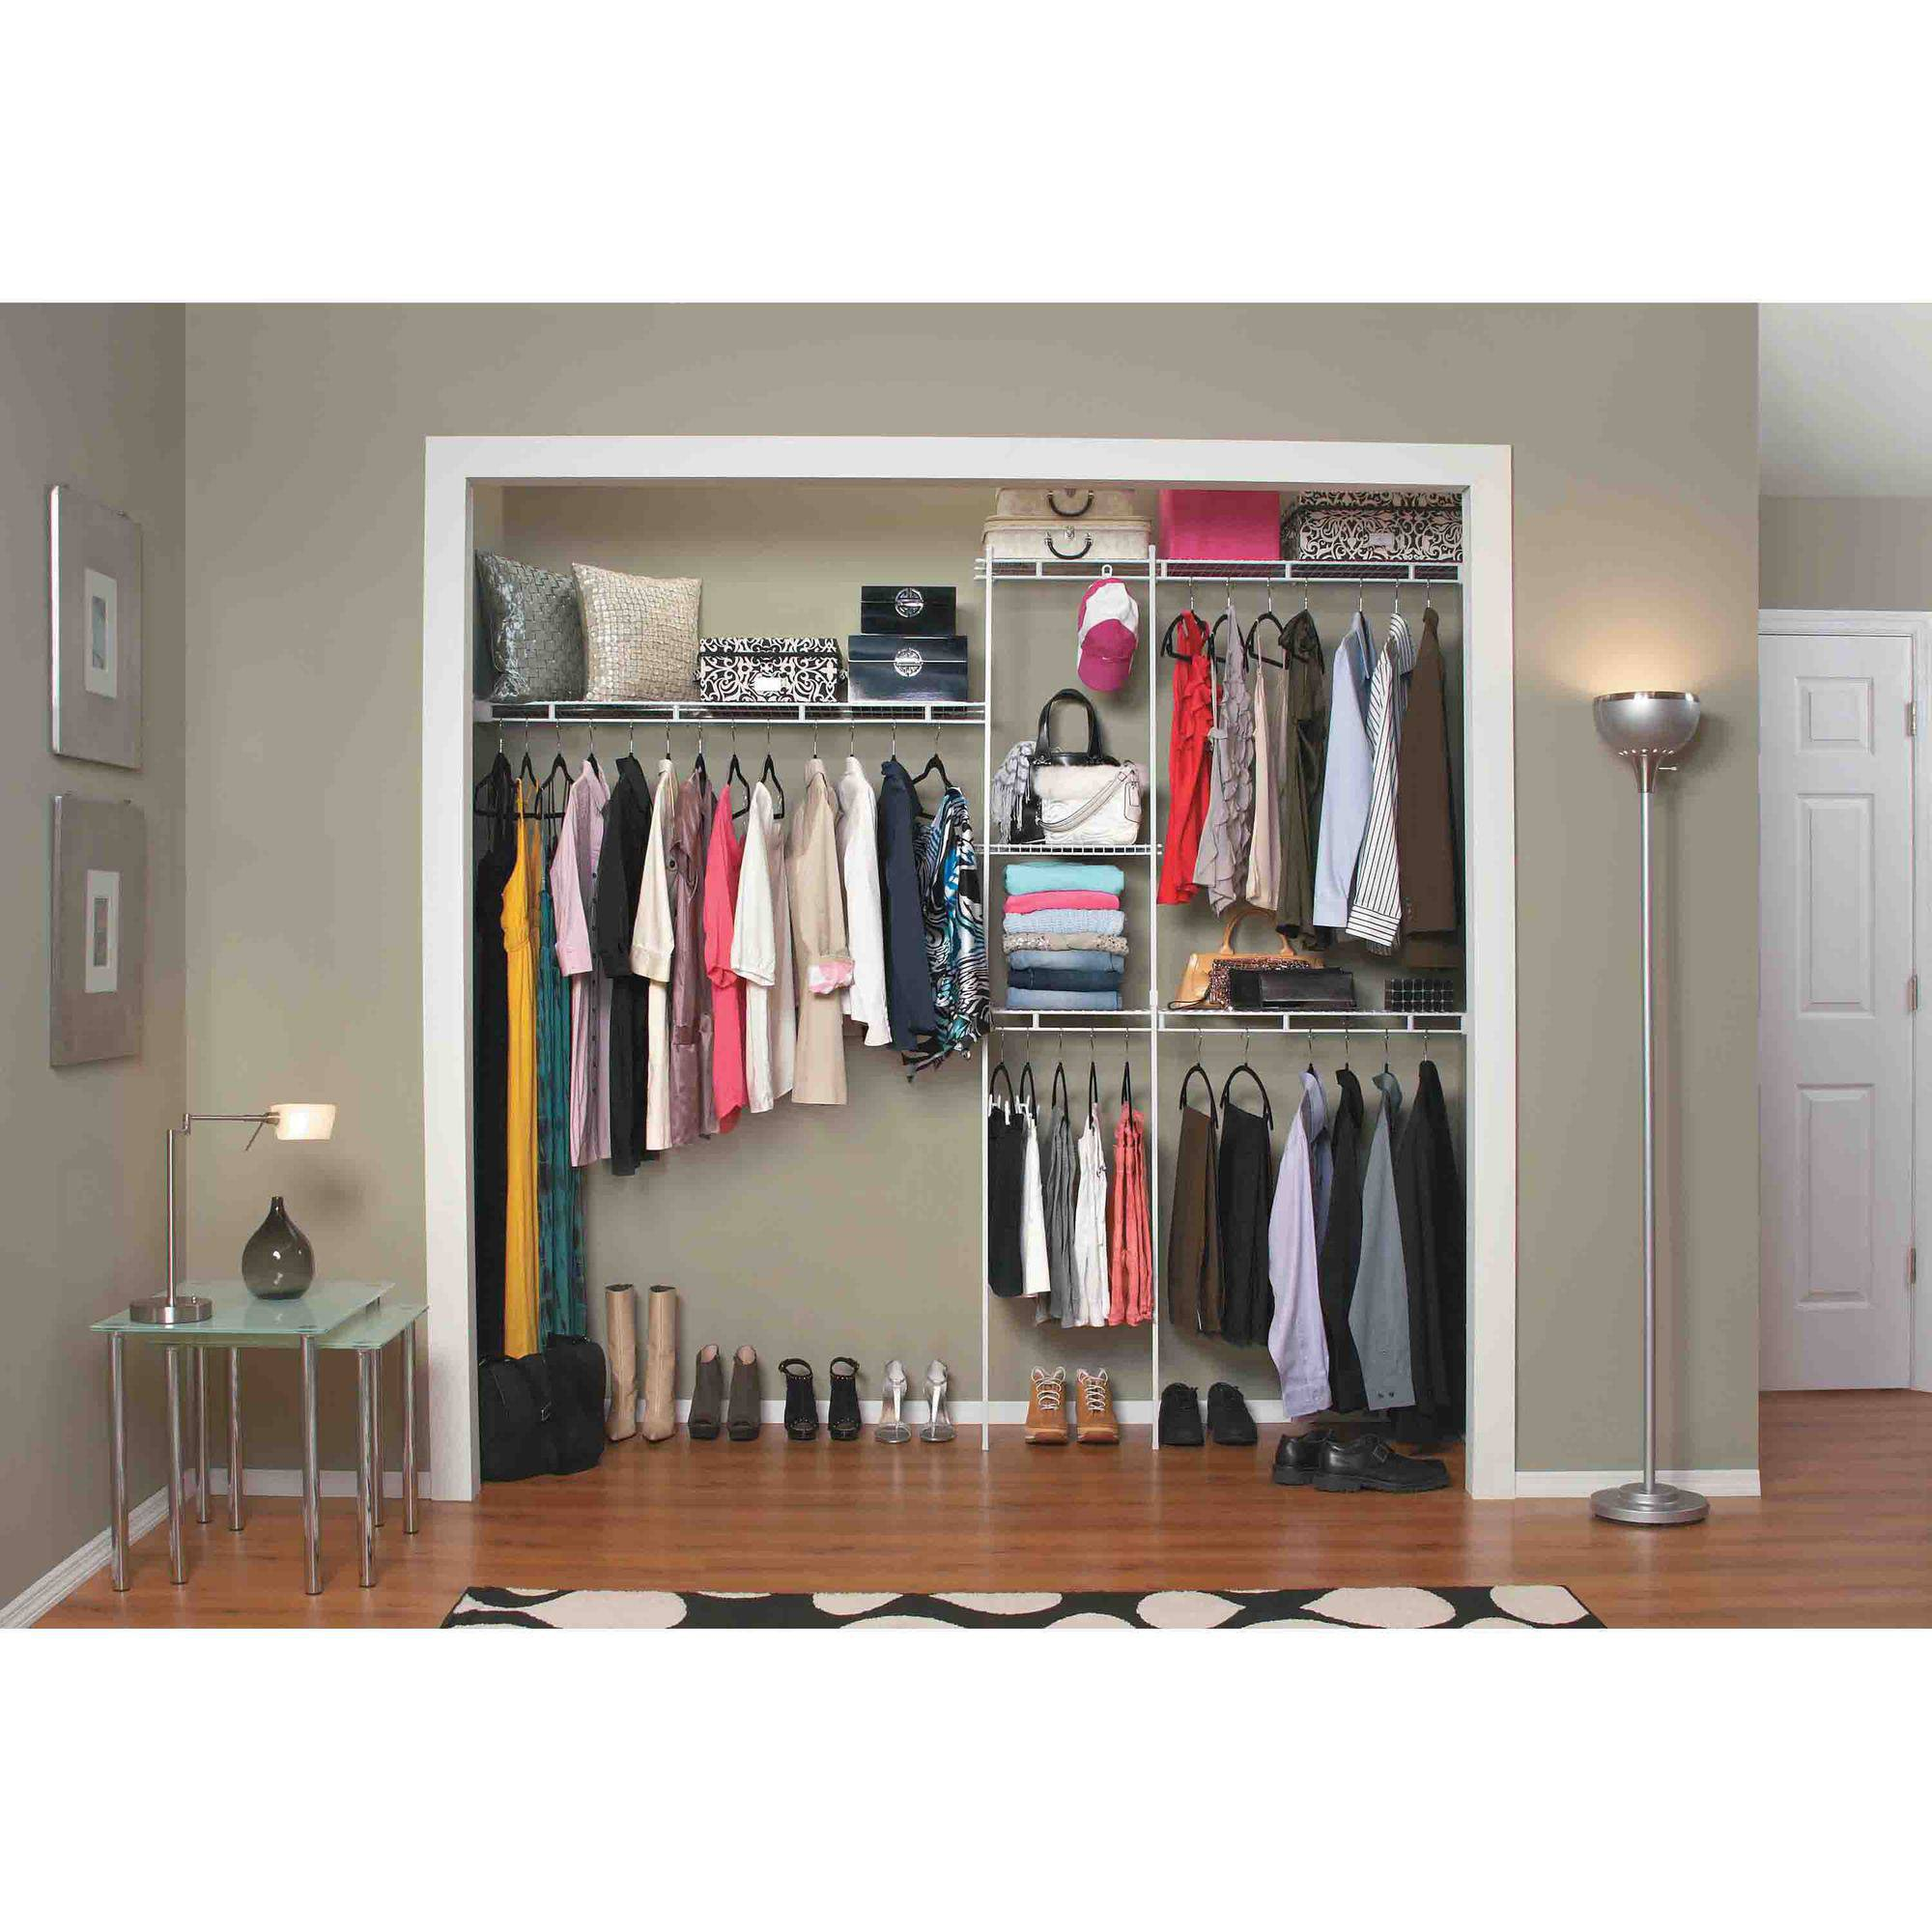 closetmaid closet organizer kit, 5u0027 to 8u0027 - walmart.com MQPVLFI